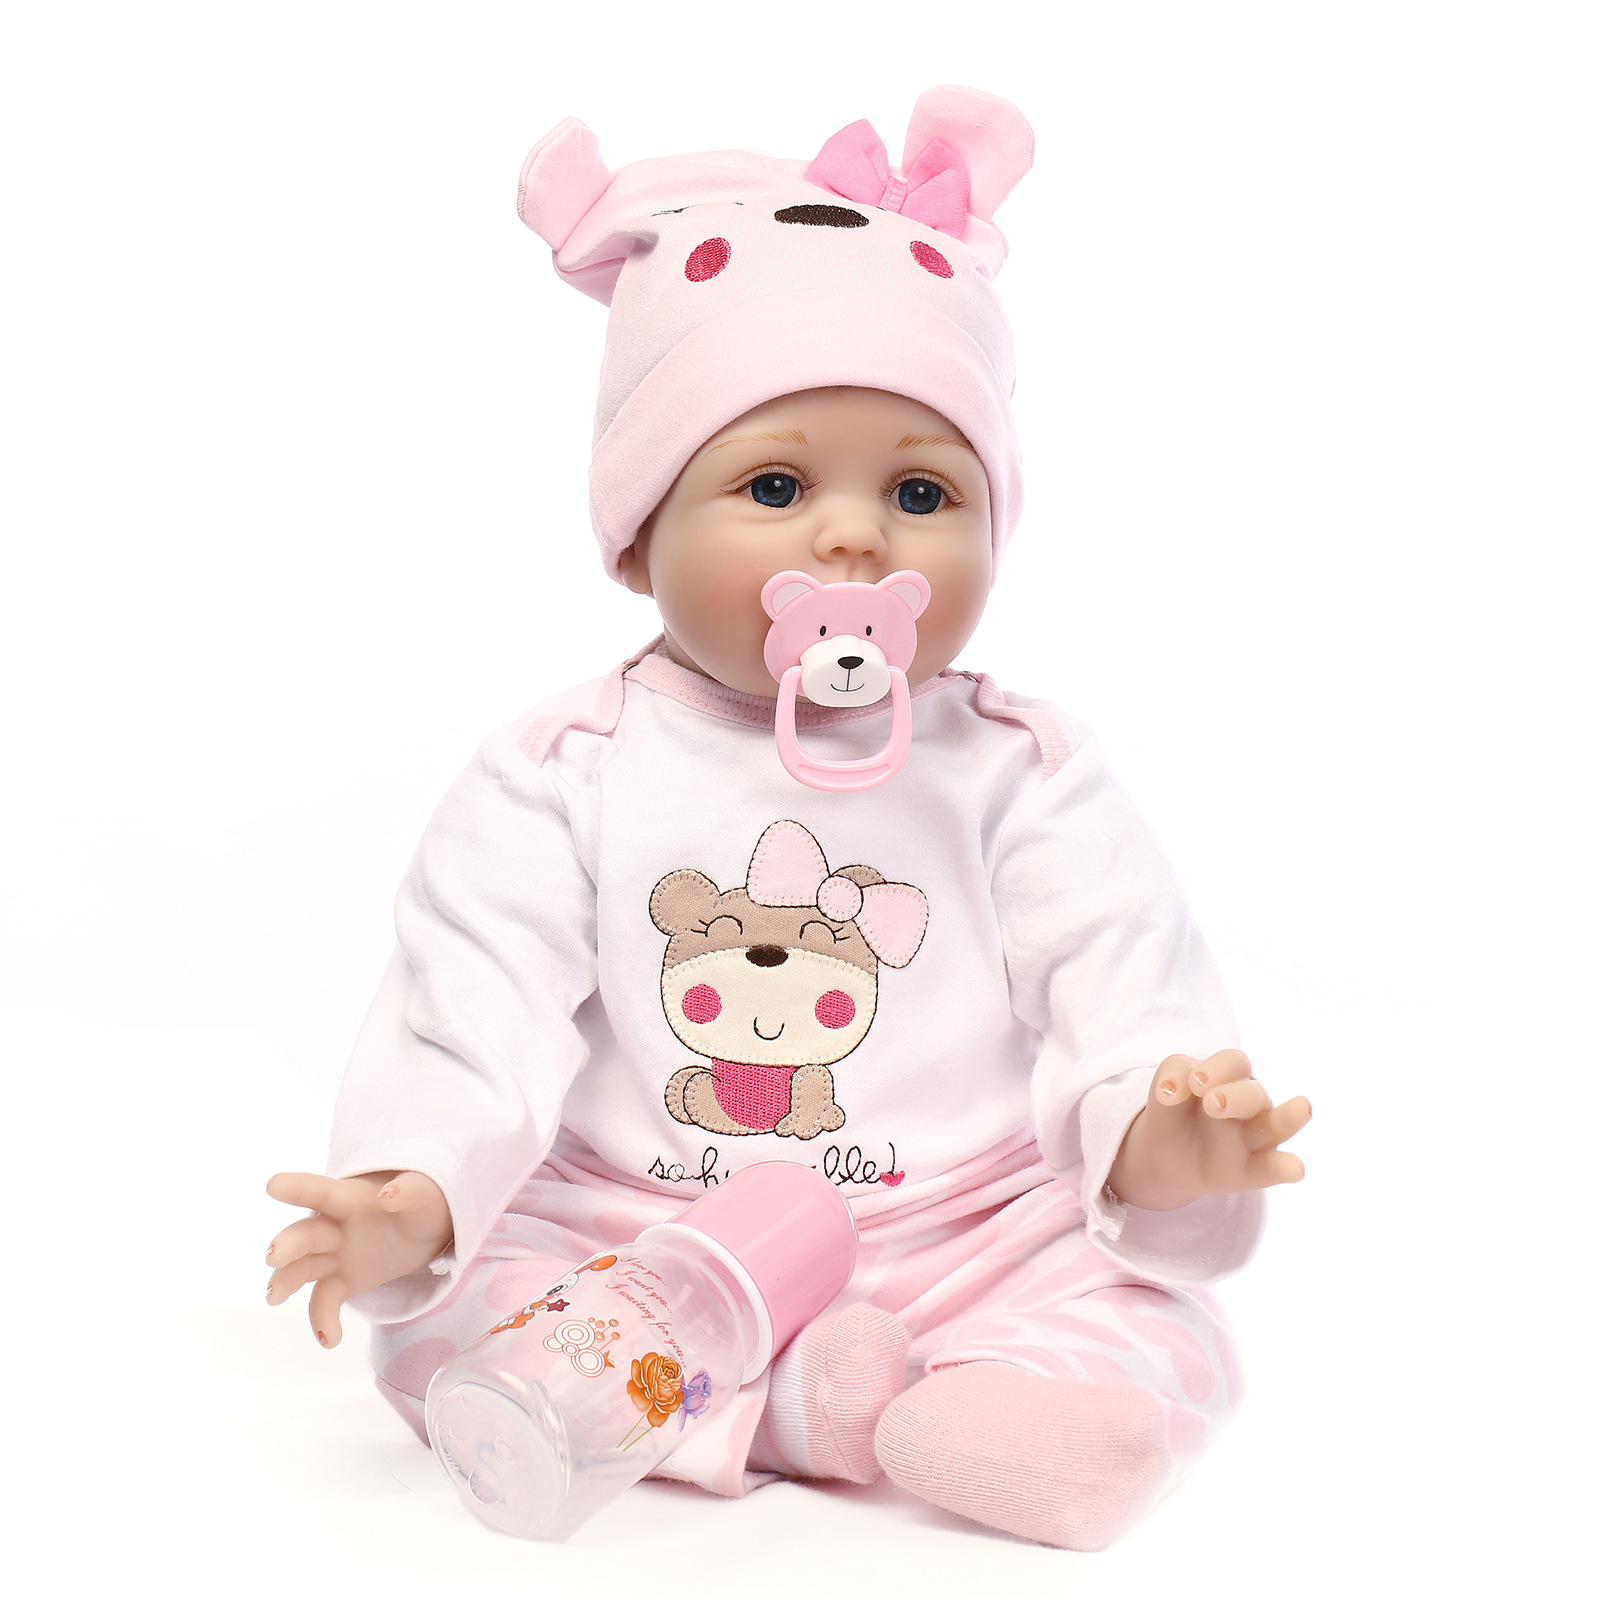 Soft Silicone Vinyl 55cm Reborn Baby Girl Doll Appease Lifelike Babies play house toy for Children